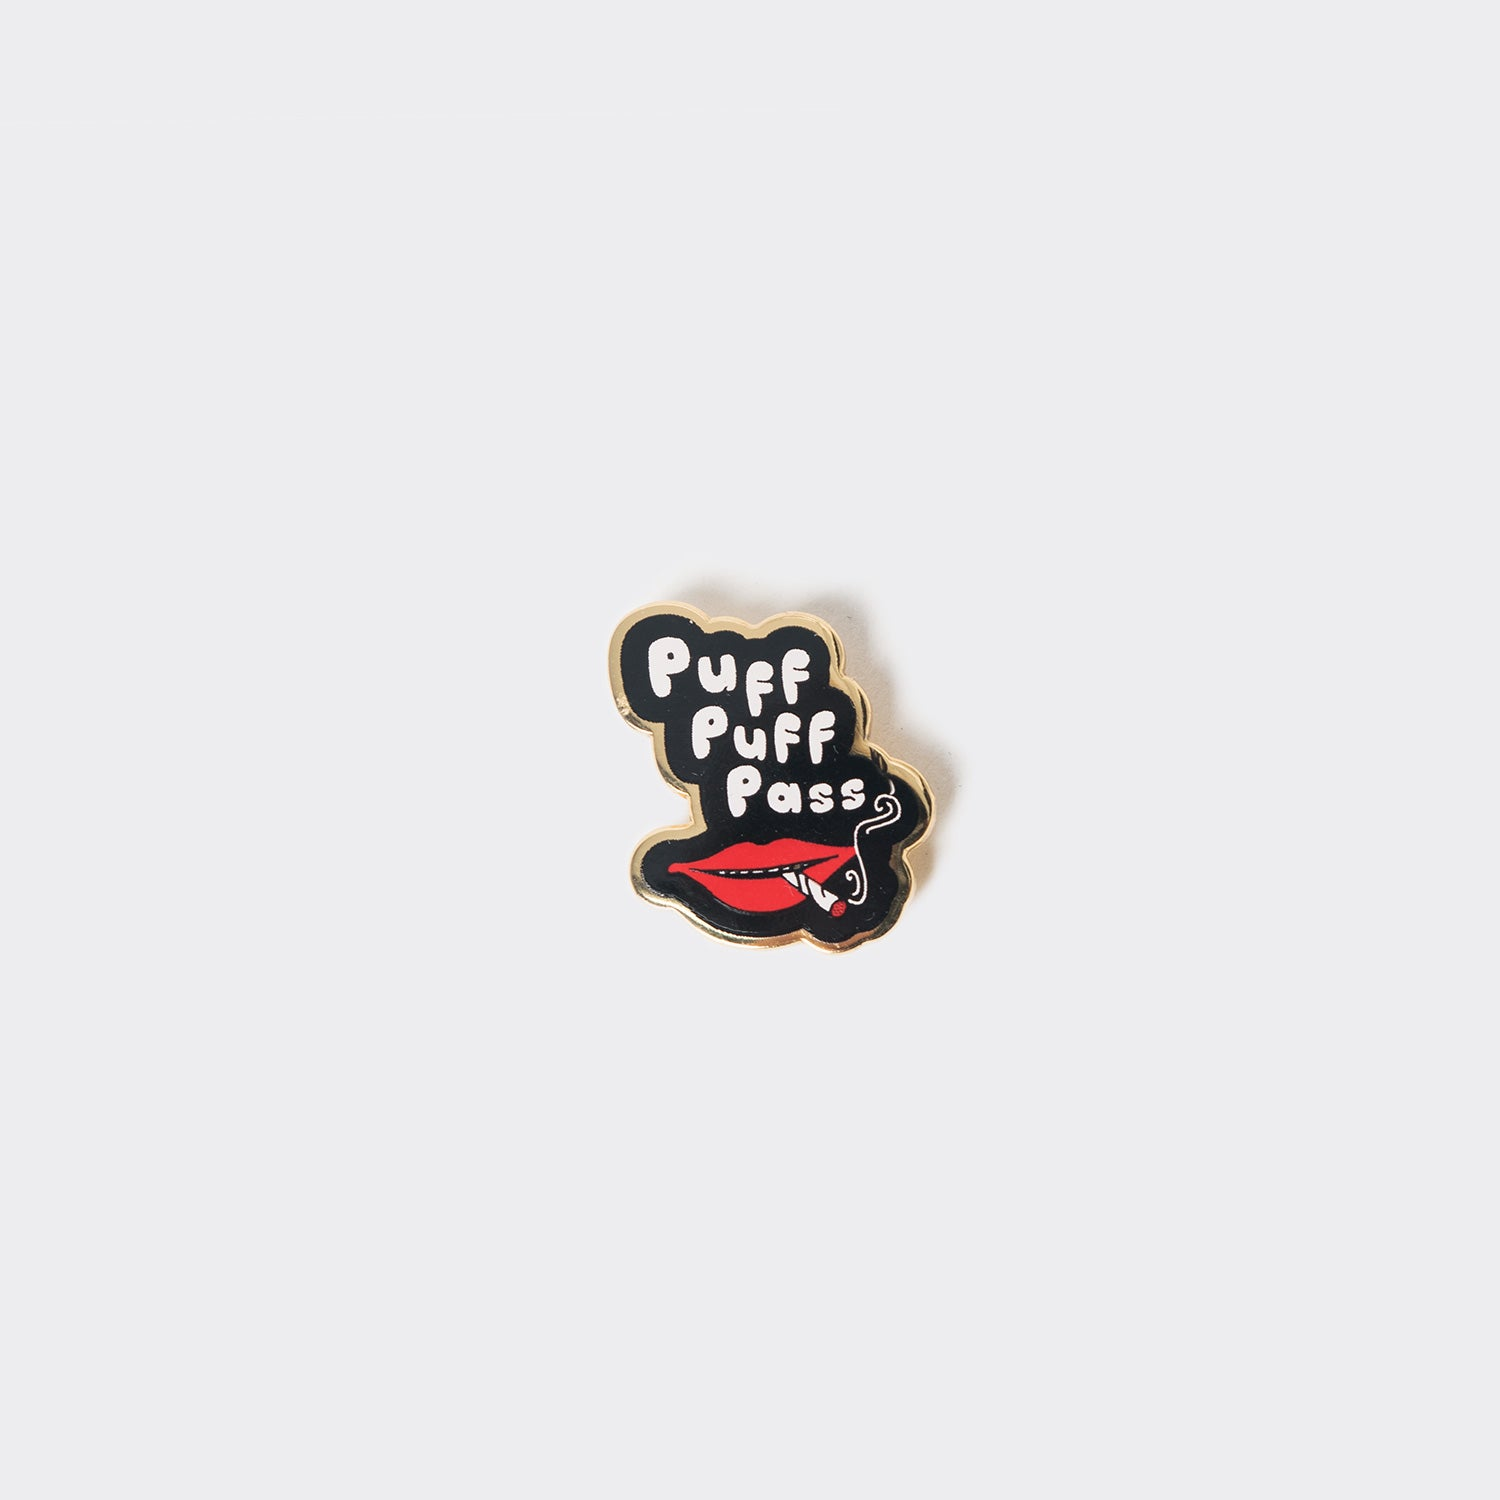 Good Worth Puff Puff Pass Pin Badge